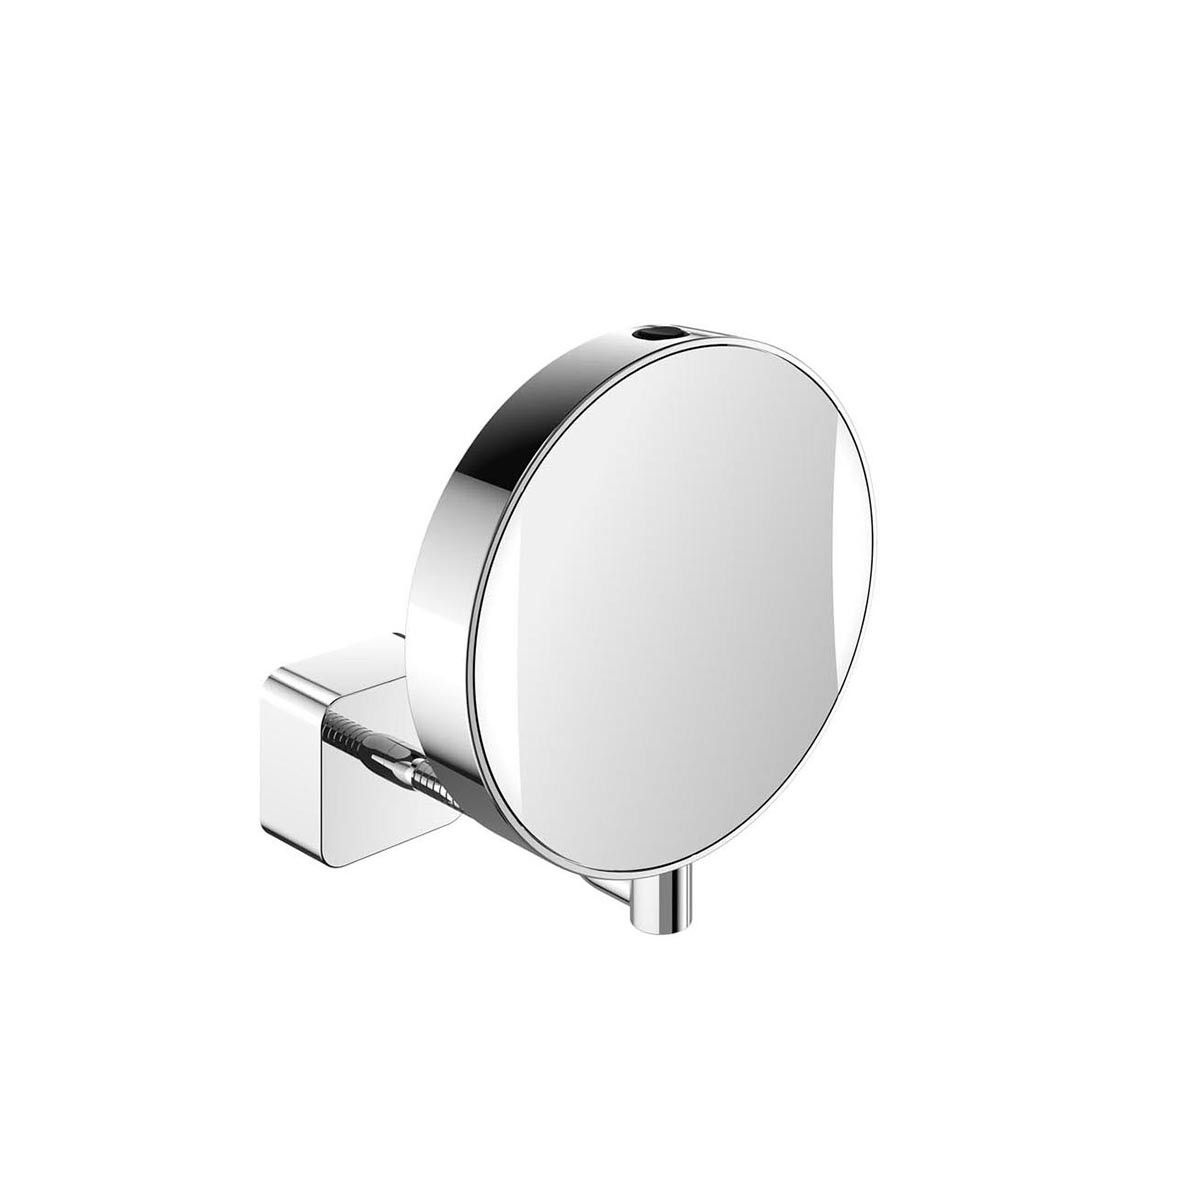 Spiegel 109500111 hard wired flexible arm led lighted magnifying stunning elegant high end modern led lighted wall mounted hard wired magnifying mirror finished mozeypictures Choice Image